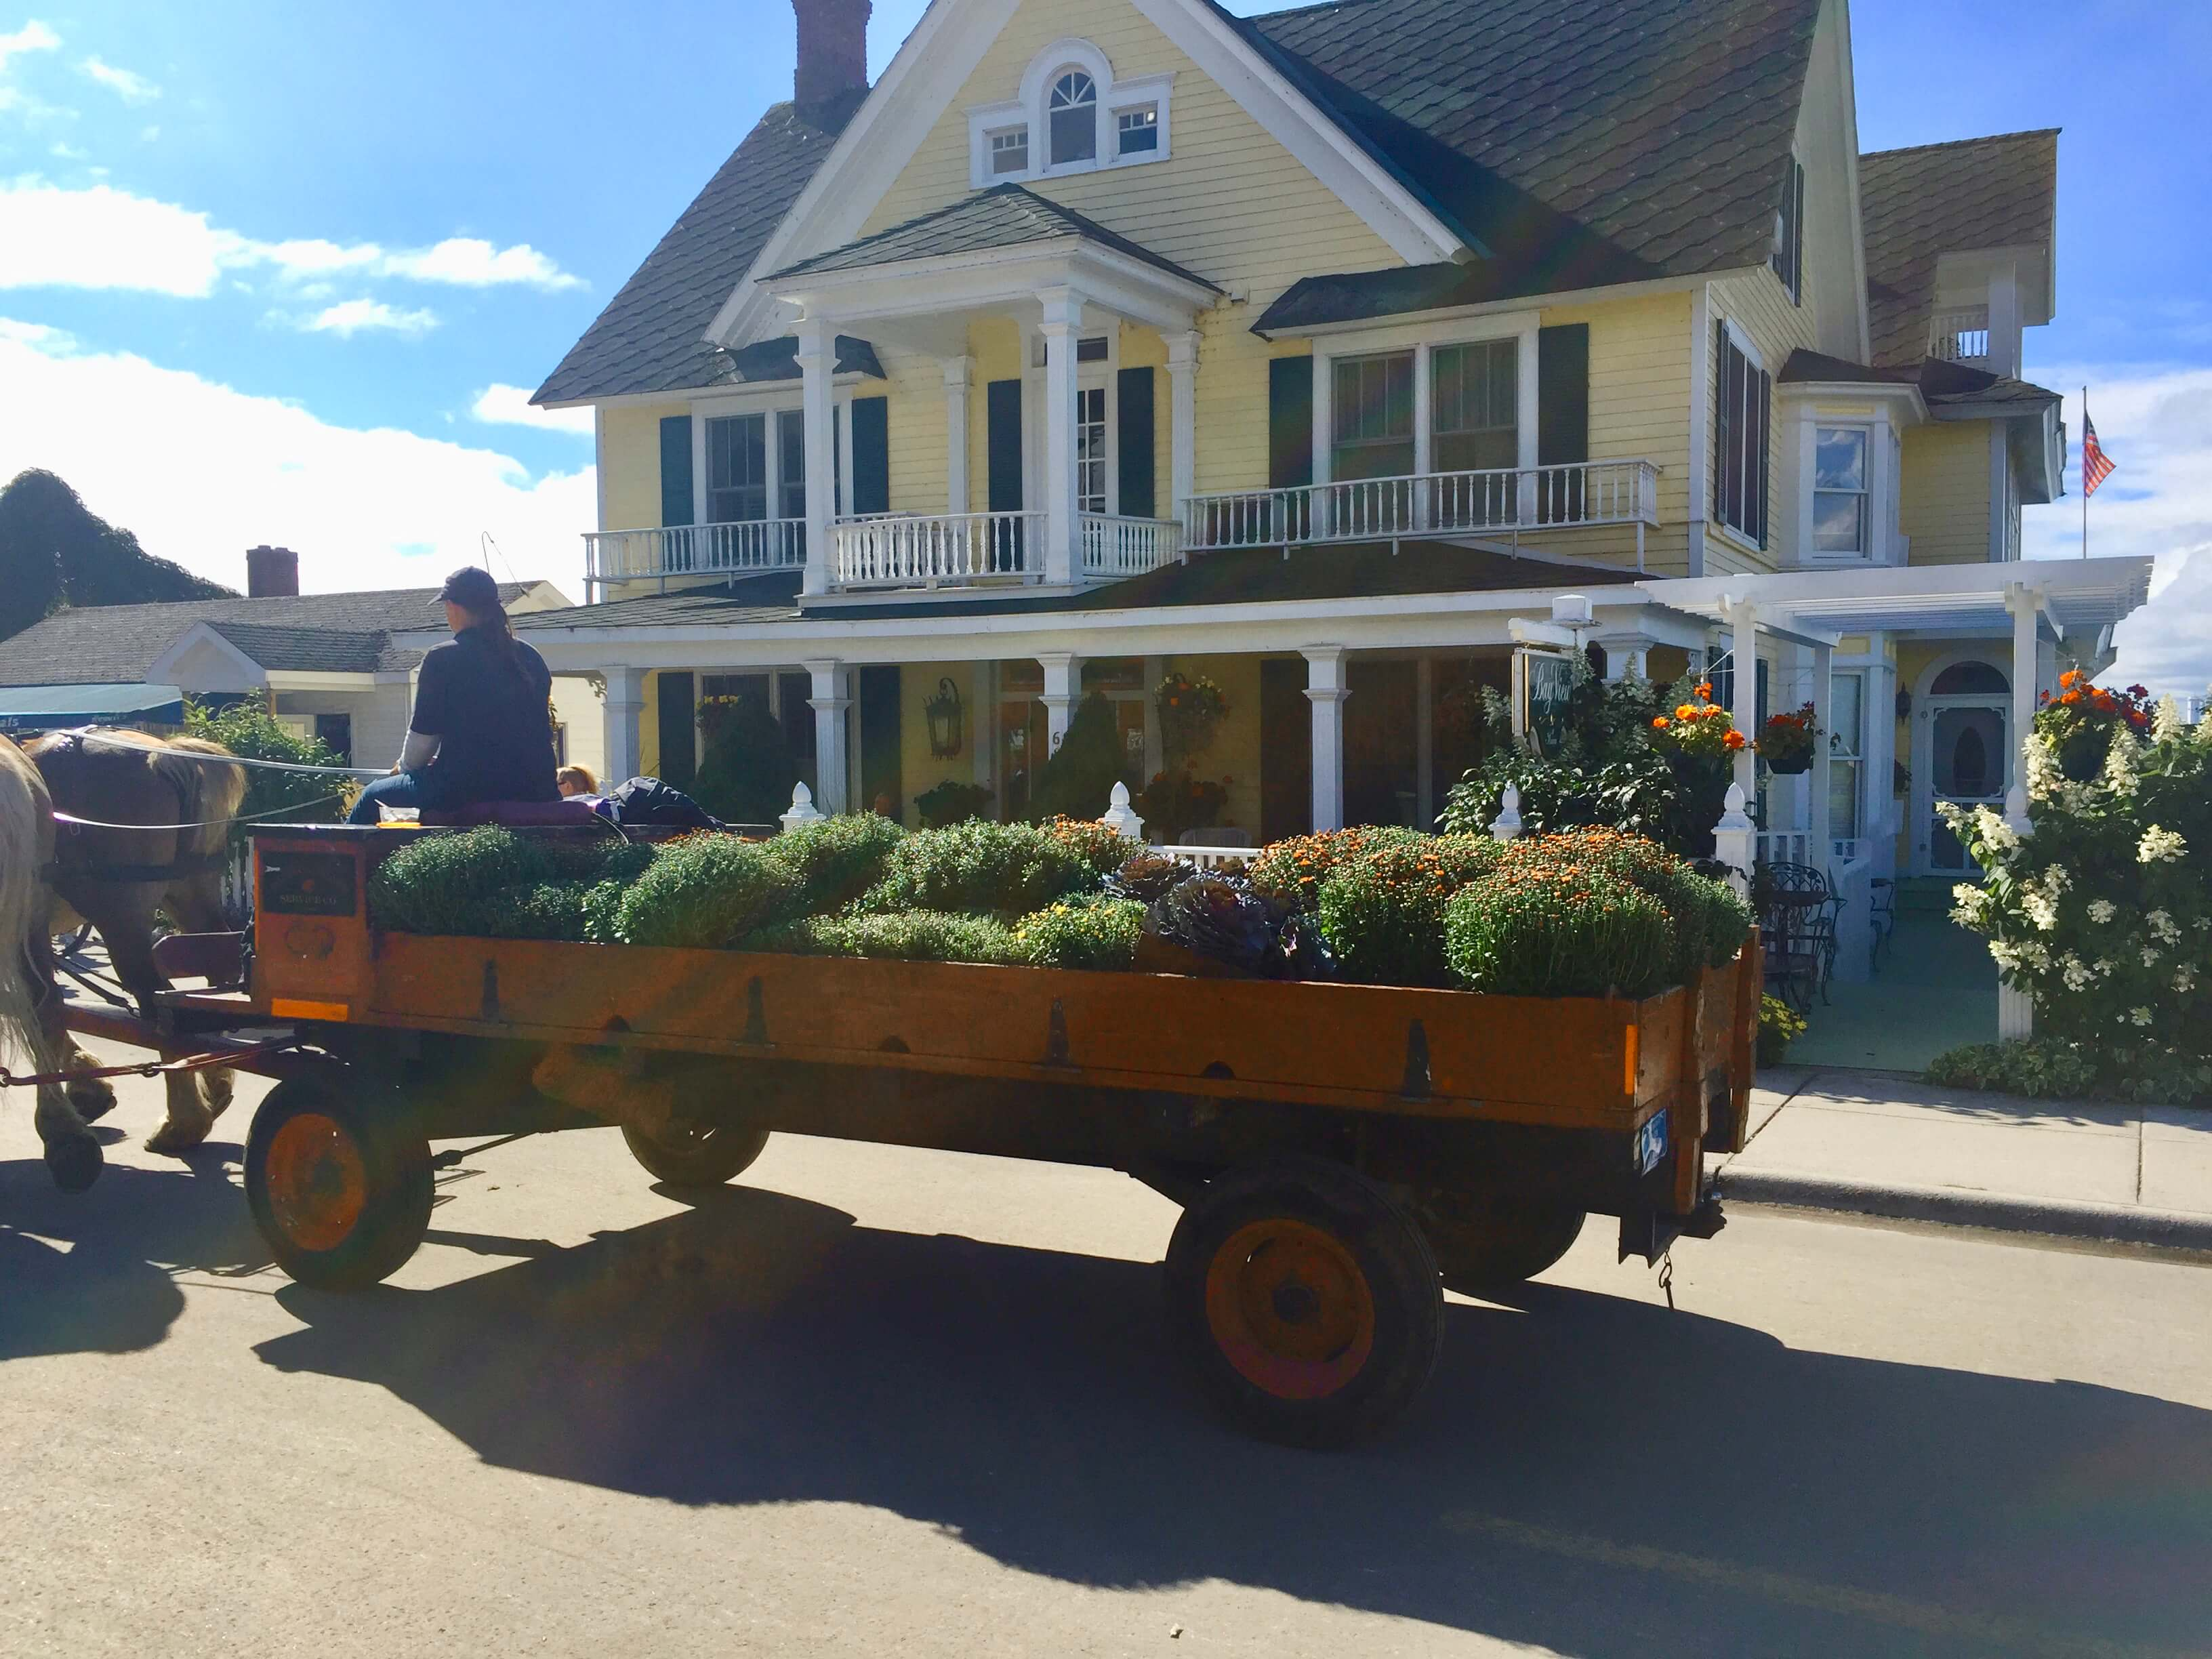 Horse-drawn cart carries a load of chrysanthemums in front of Bay View B&B